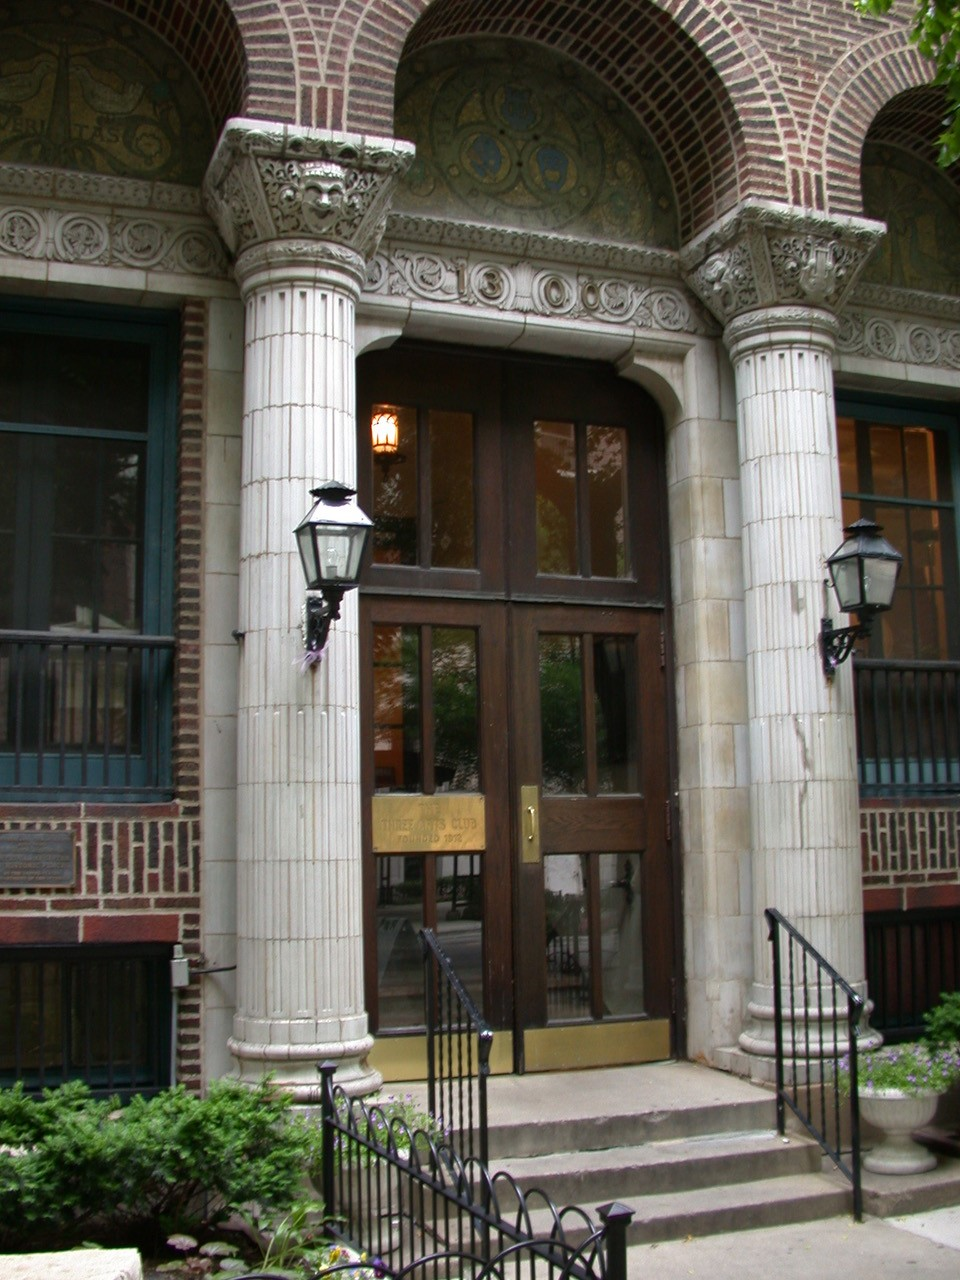 Image of wooden double doors flanked by decorative columns serving as the entrance to the Three Arts Club building